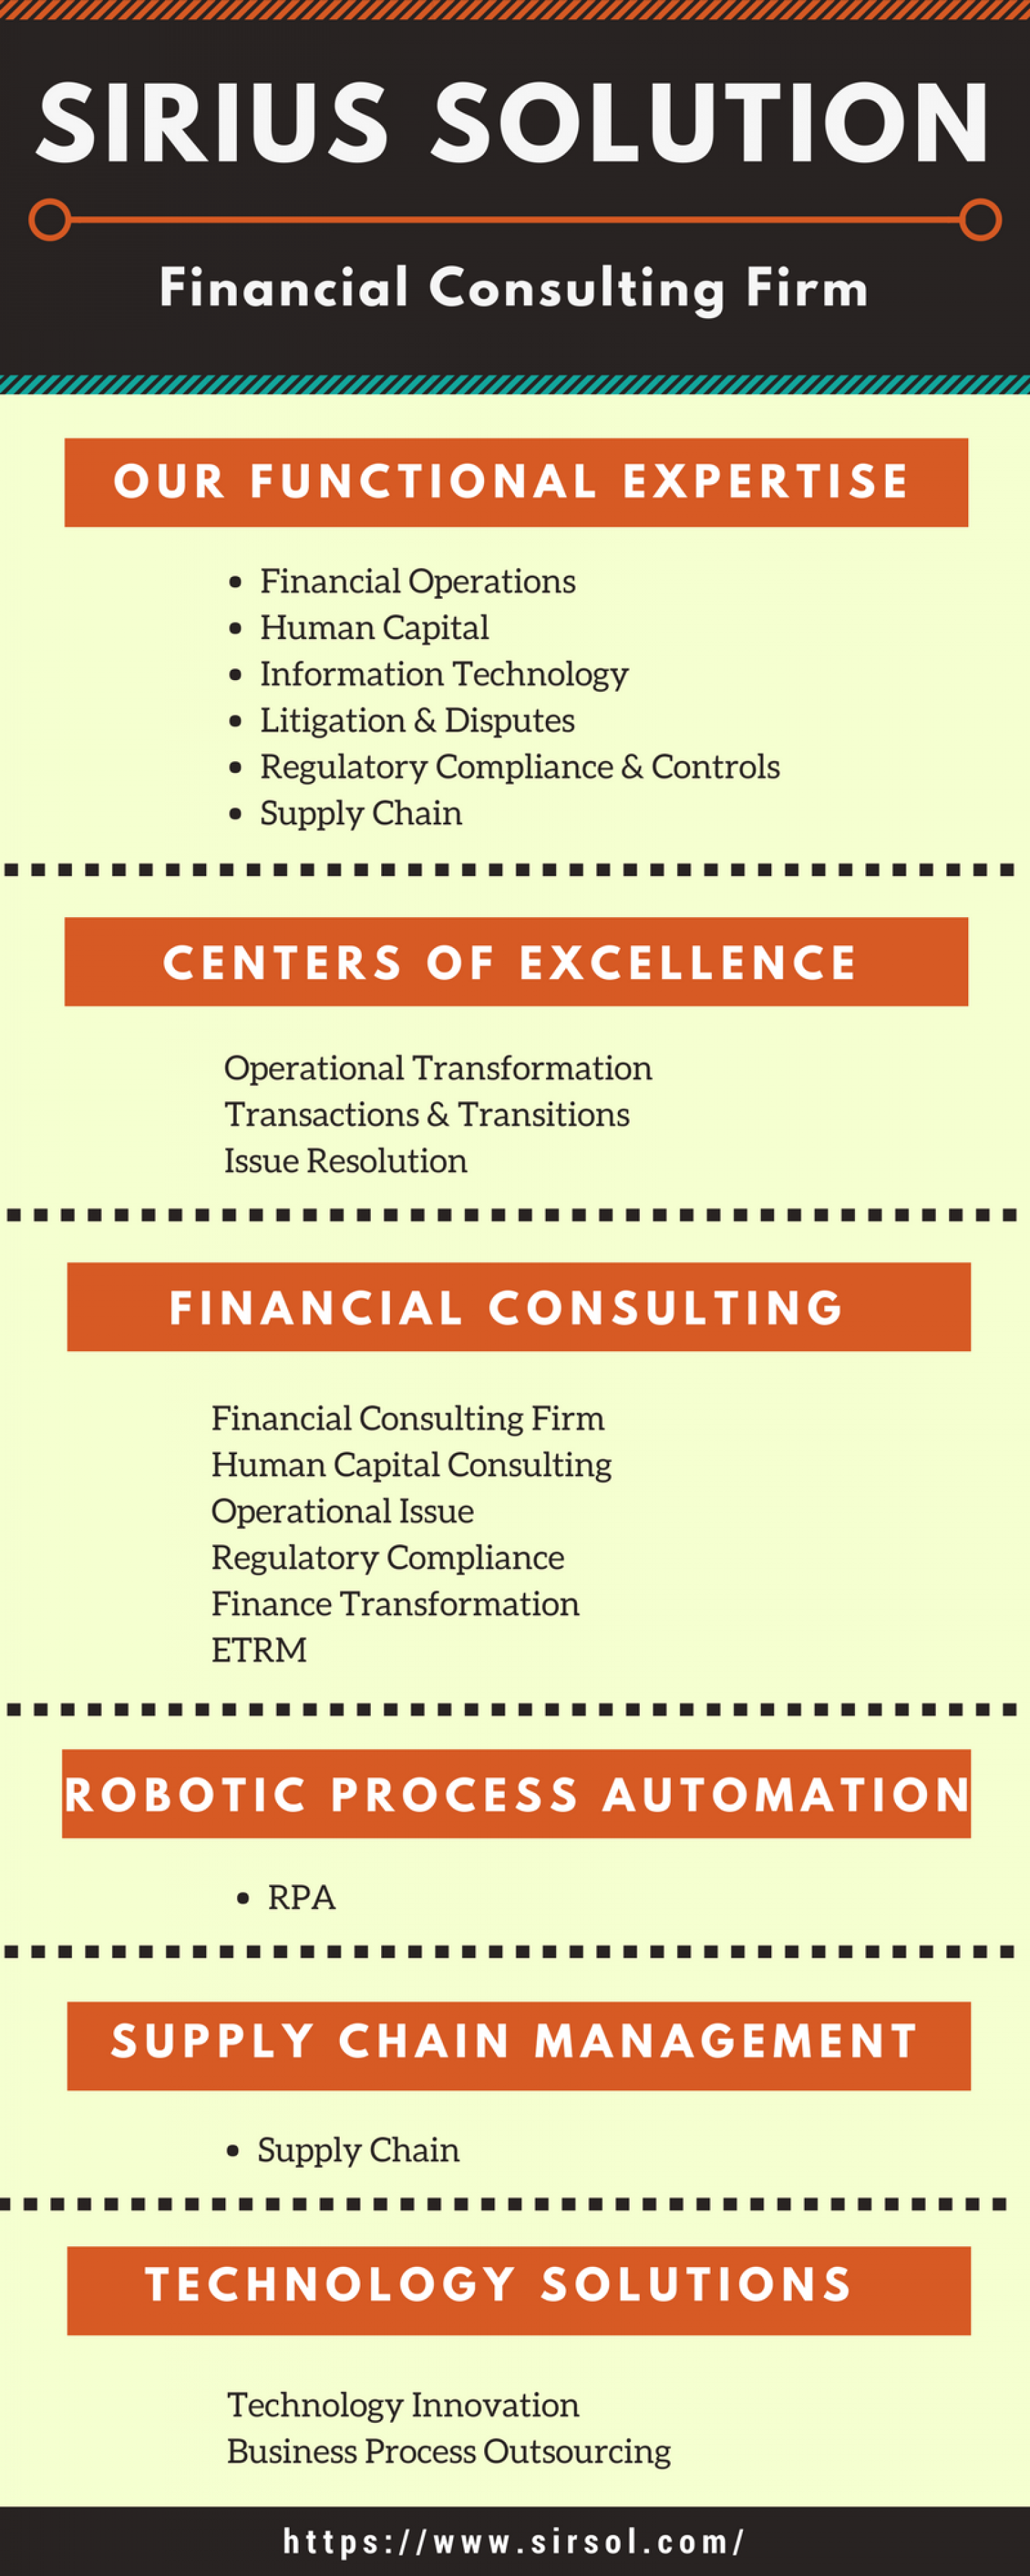 Sirius Solution - Financial Consulting Firm Infographic